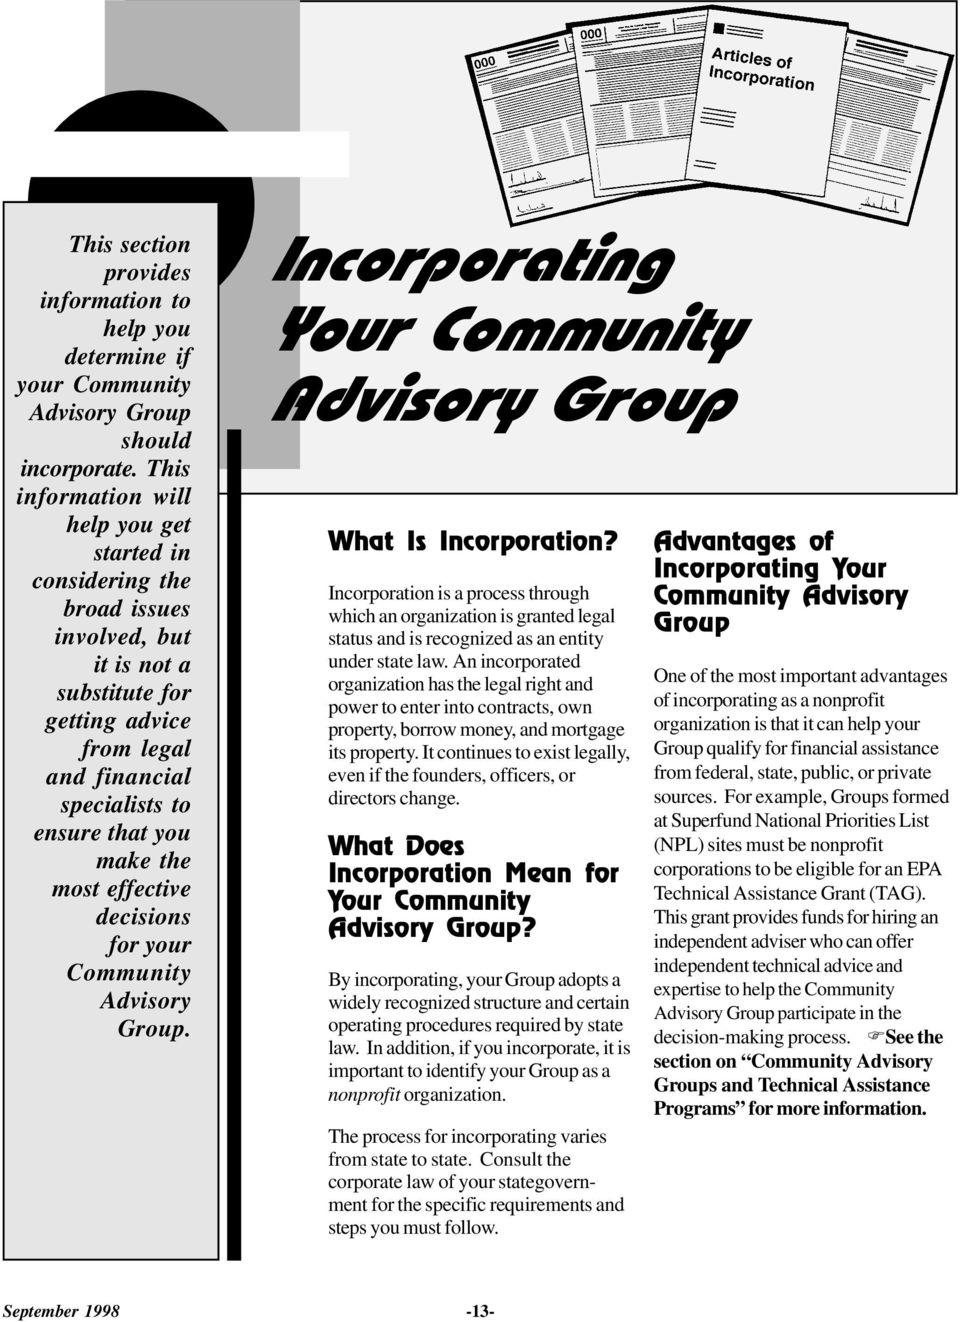 most effective decisions for your Community Advisory Group. Incorporating Your Community Advisory Group What Is Incorporation?